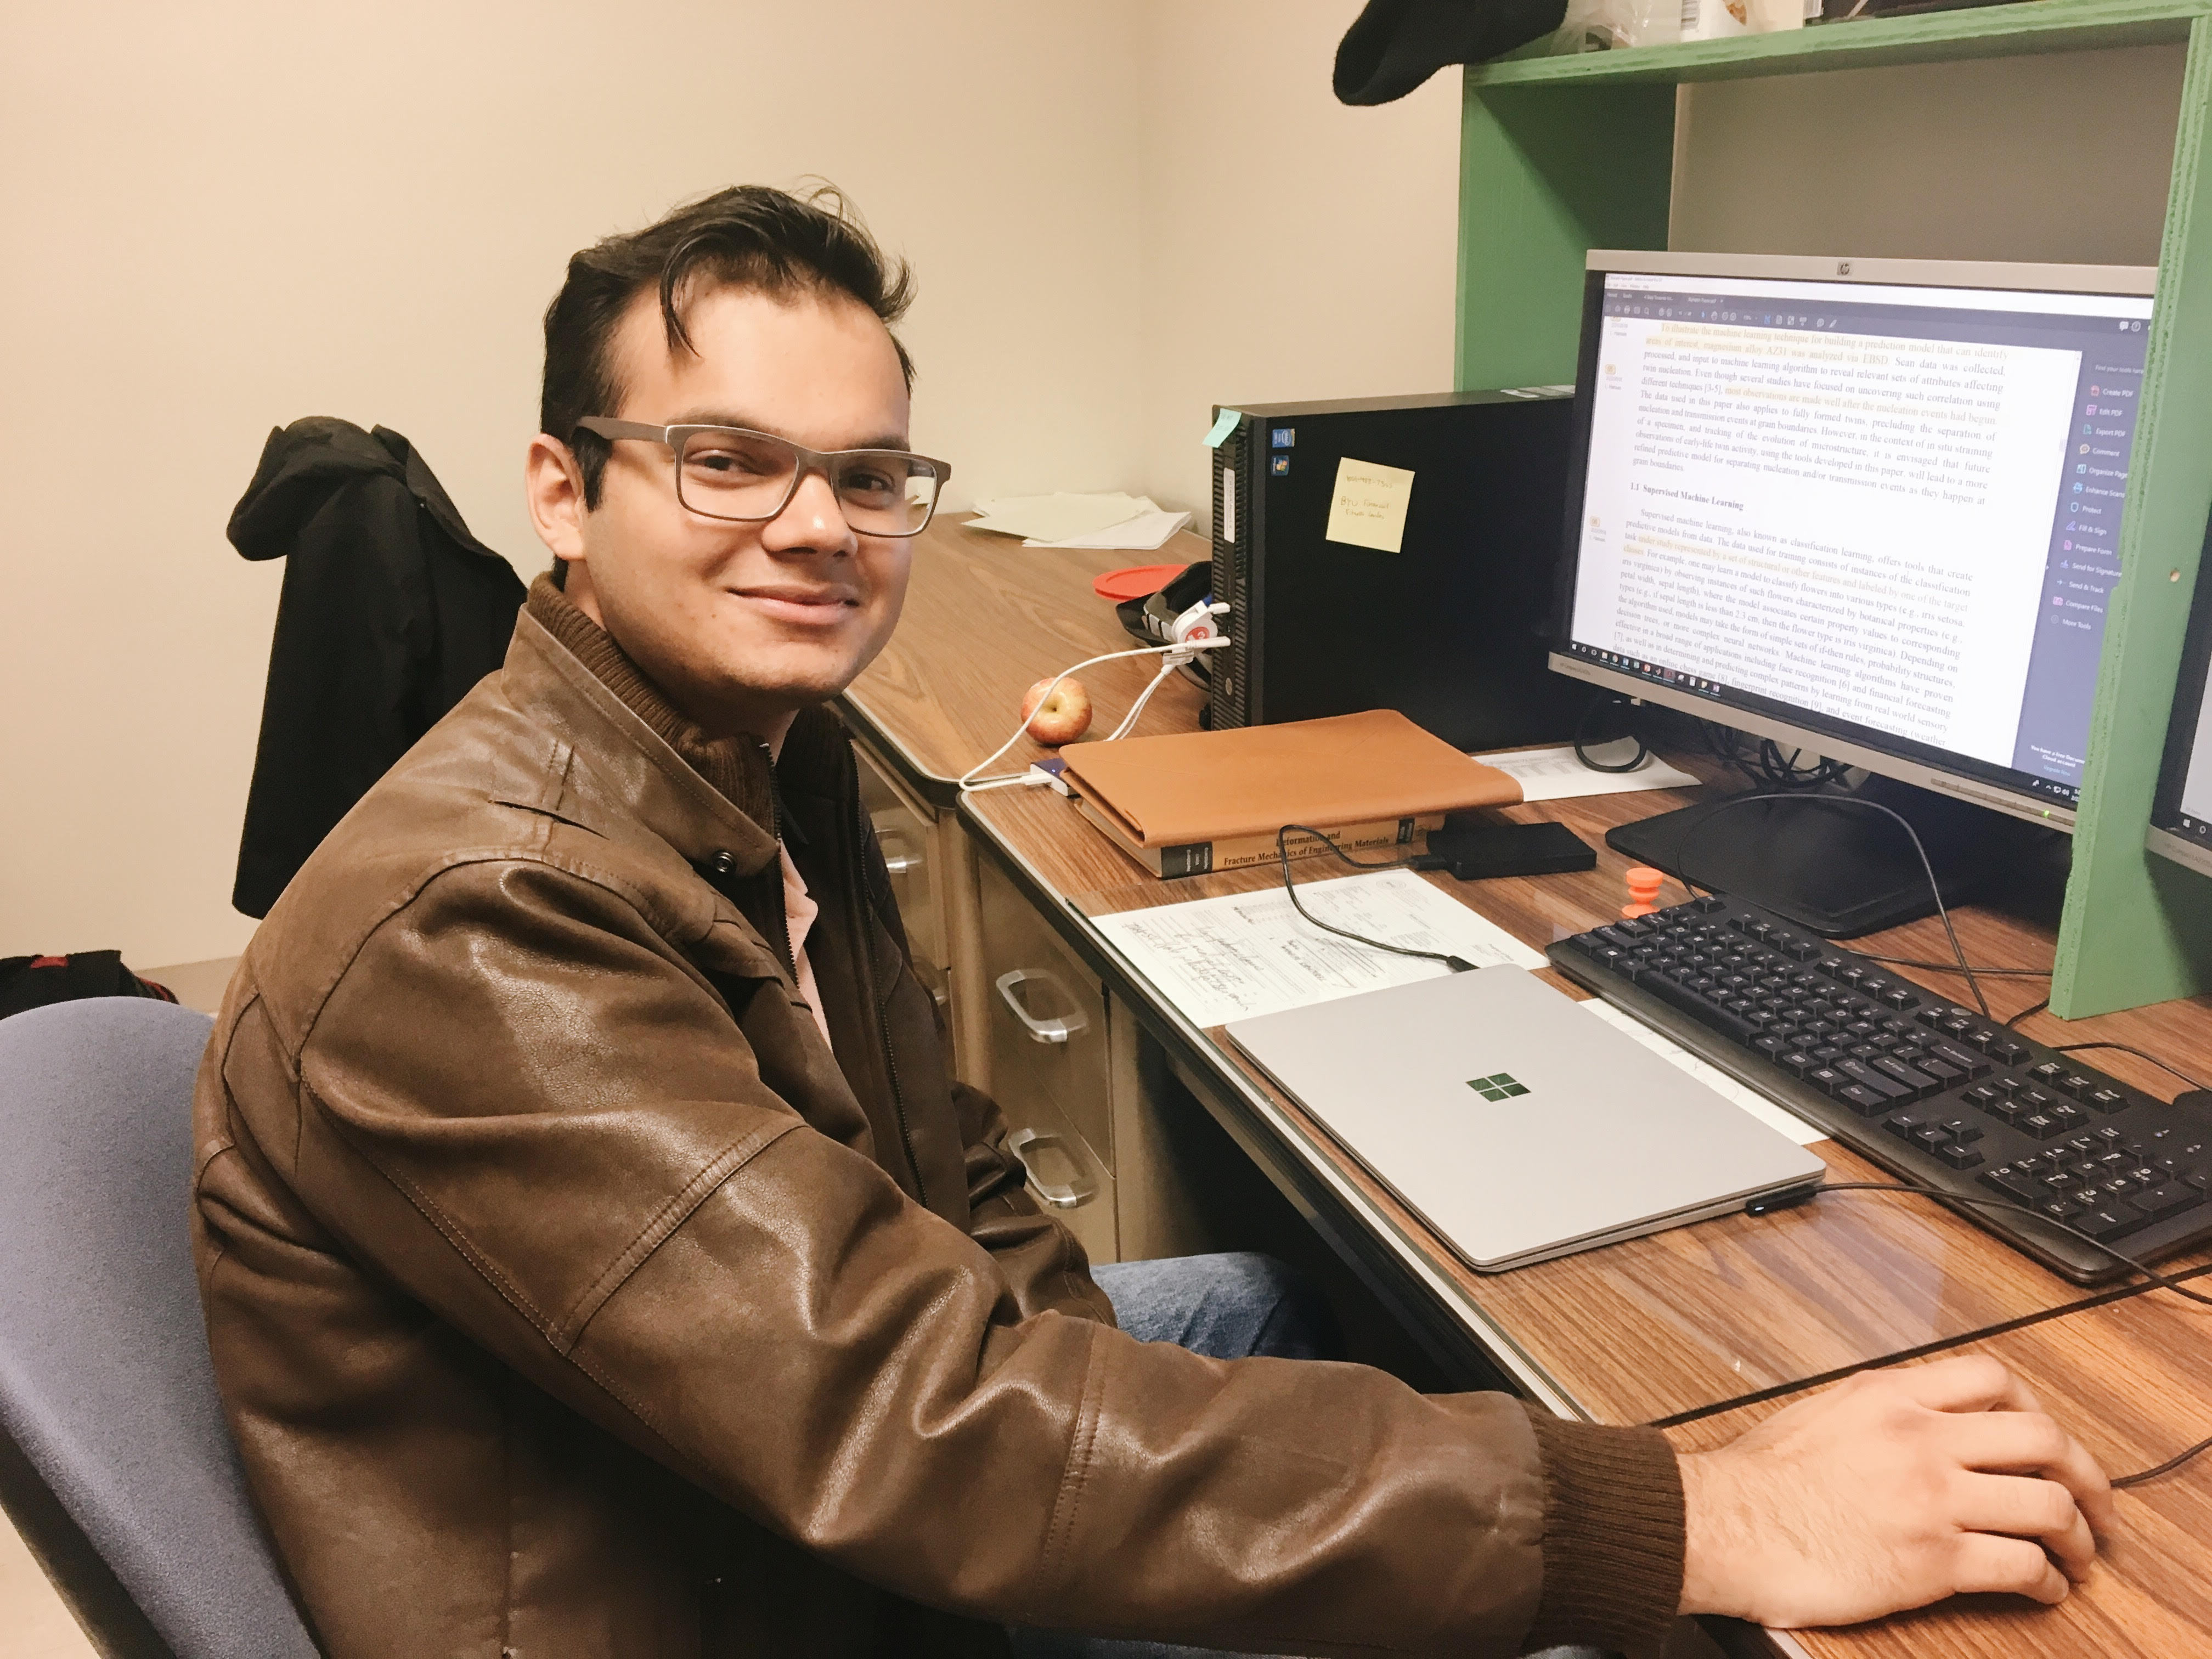 Byu Graduate Student Rishabh Sharma Sits At His Desk In An Engineering Lab The Basement Of Clyde Building Katelyn Stiles